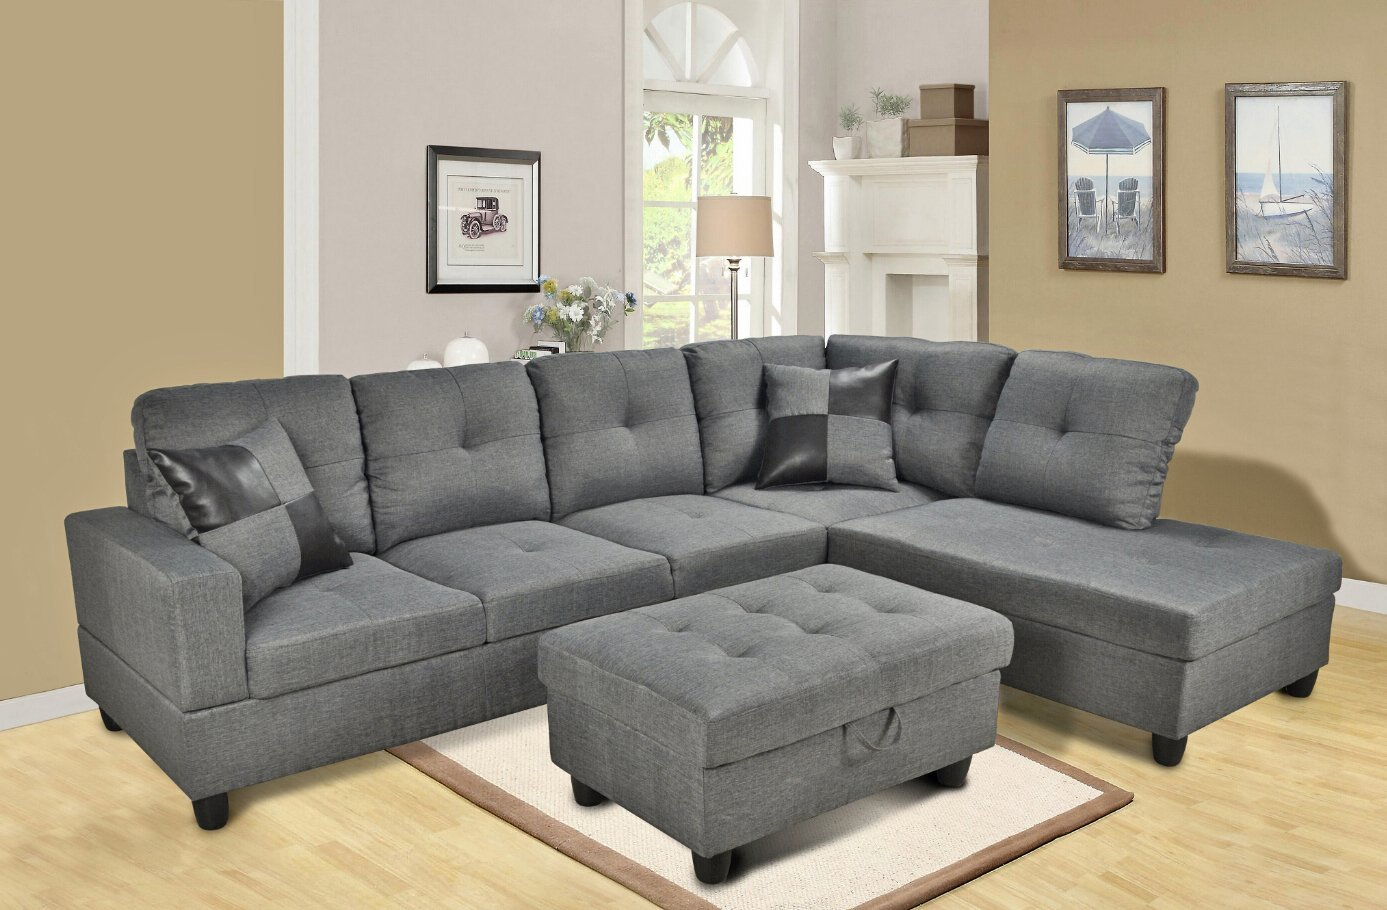 Cheap Blue Microfiber Sofa Set Find Blue Microfiber Sofa Set Deals